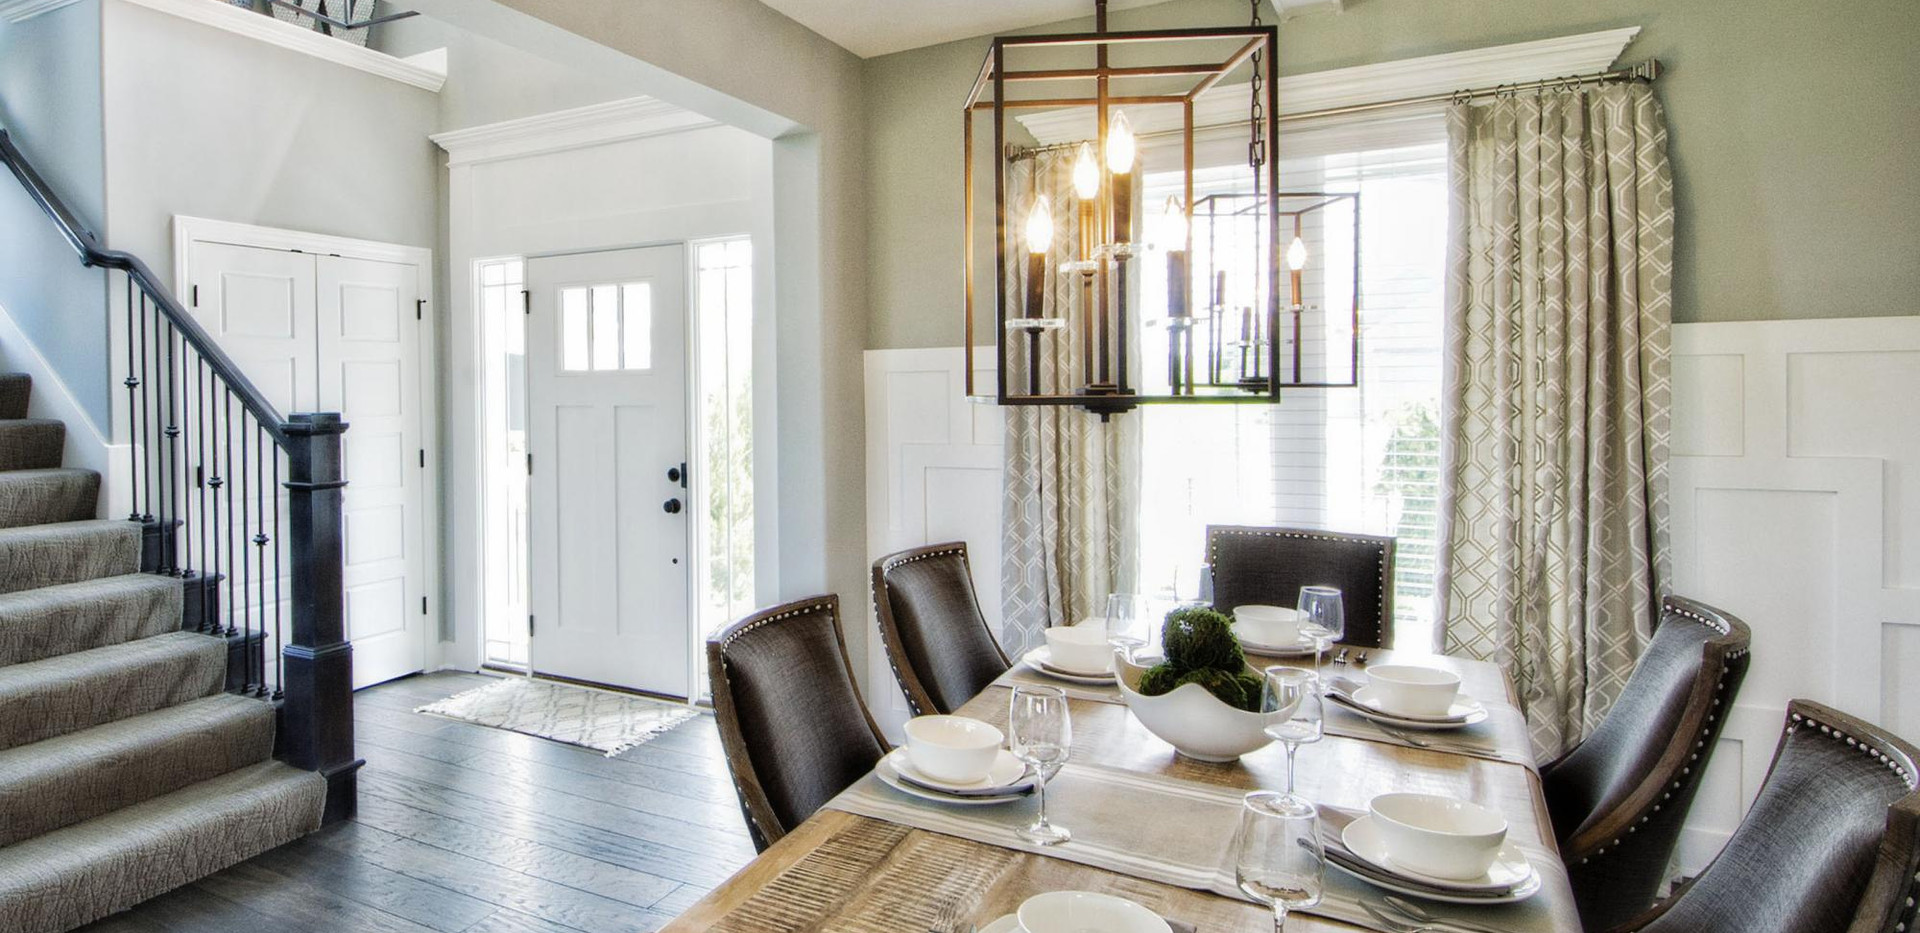 427865018602460_29-dining_room_and_entry